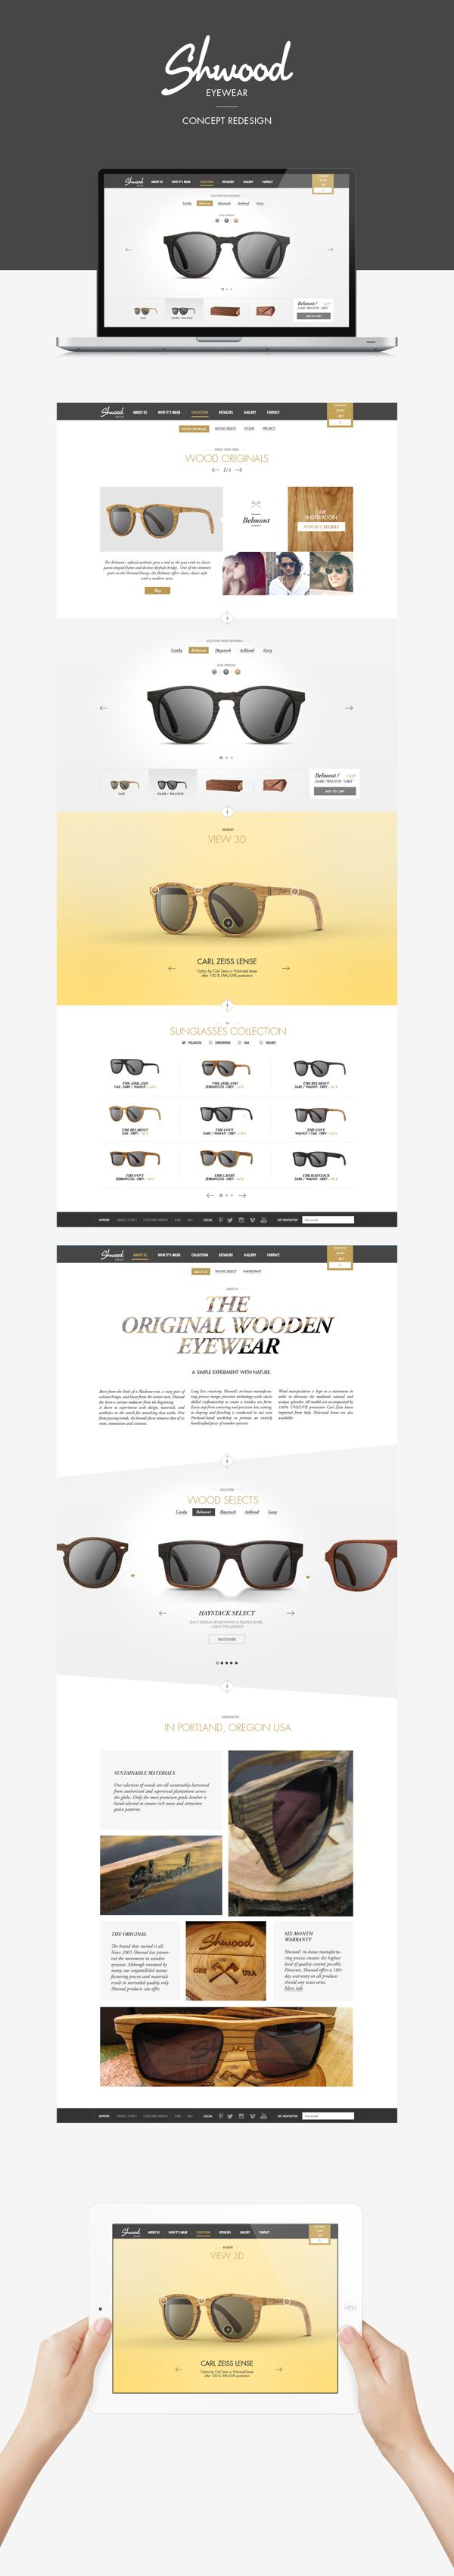 Web design inspiration (20)